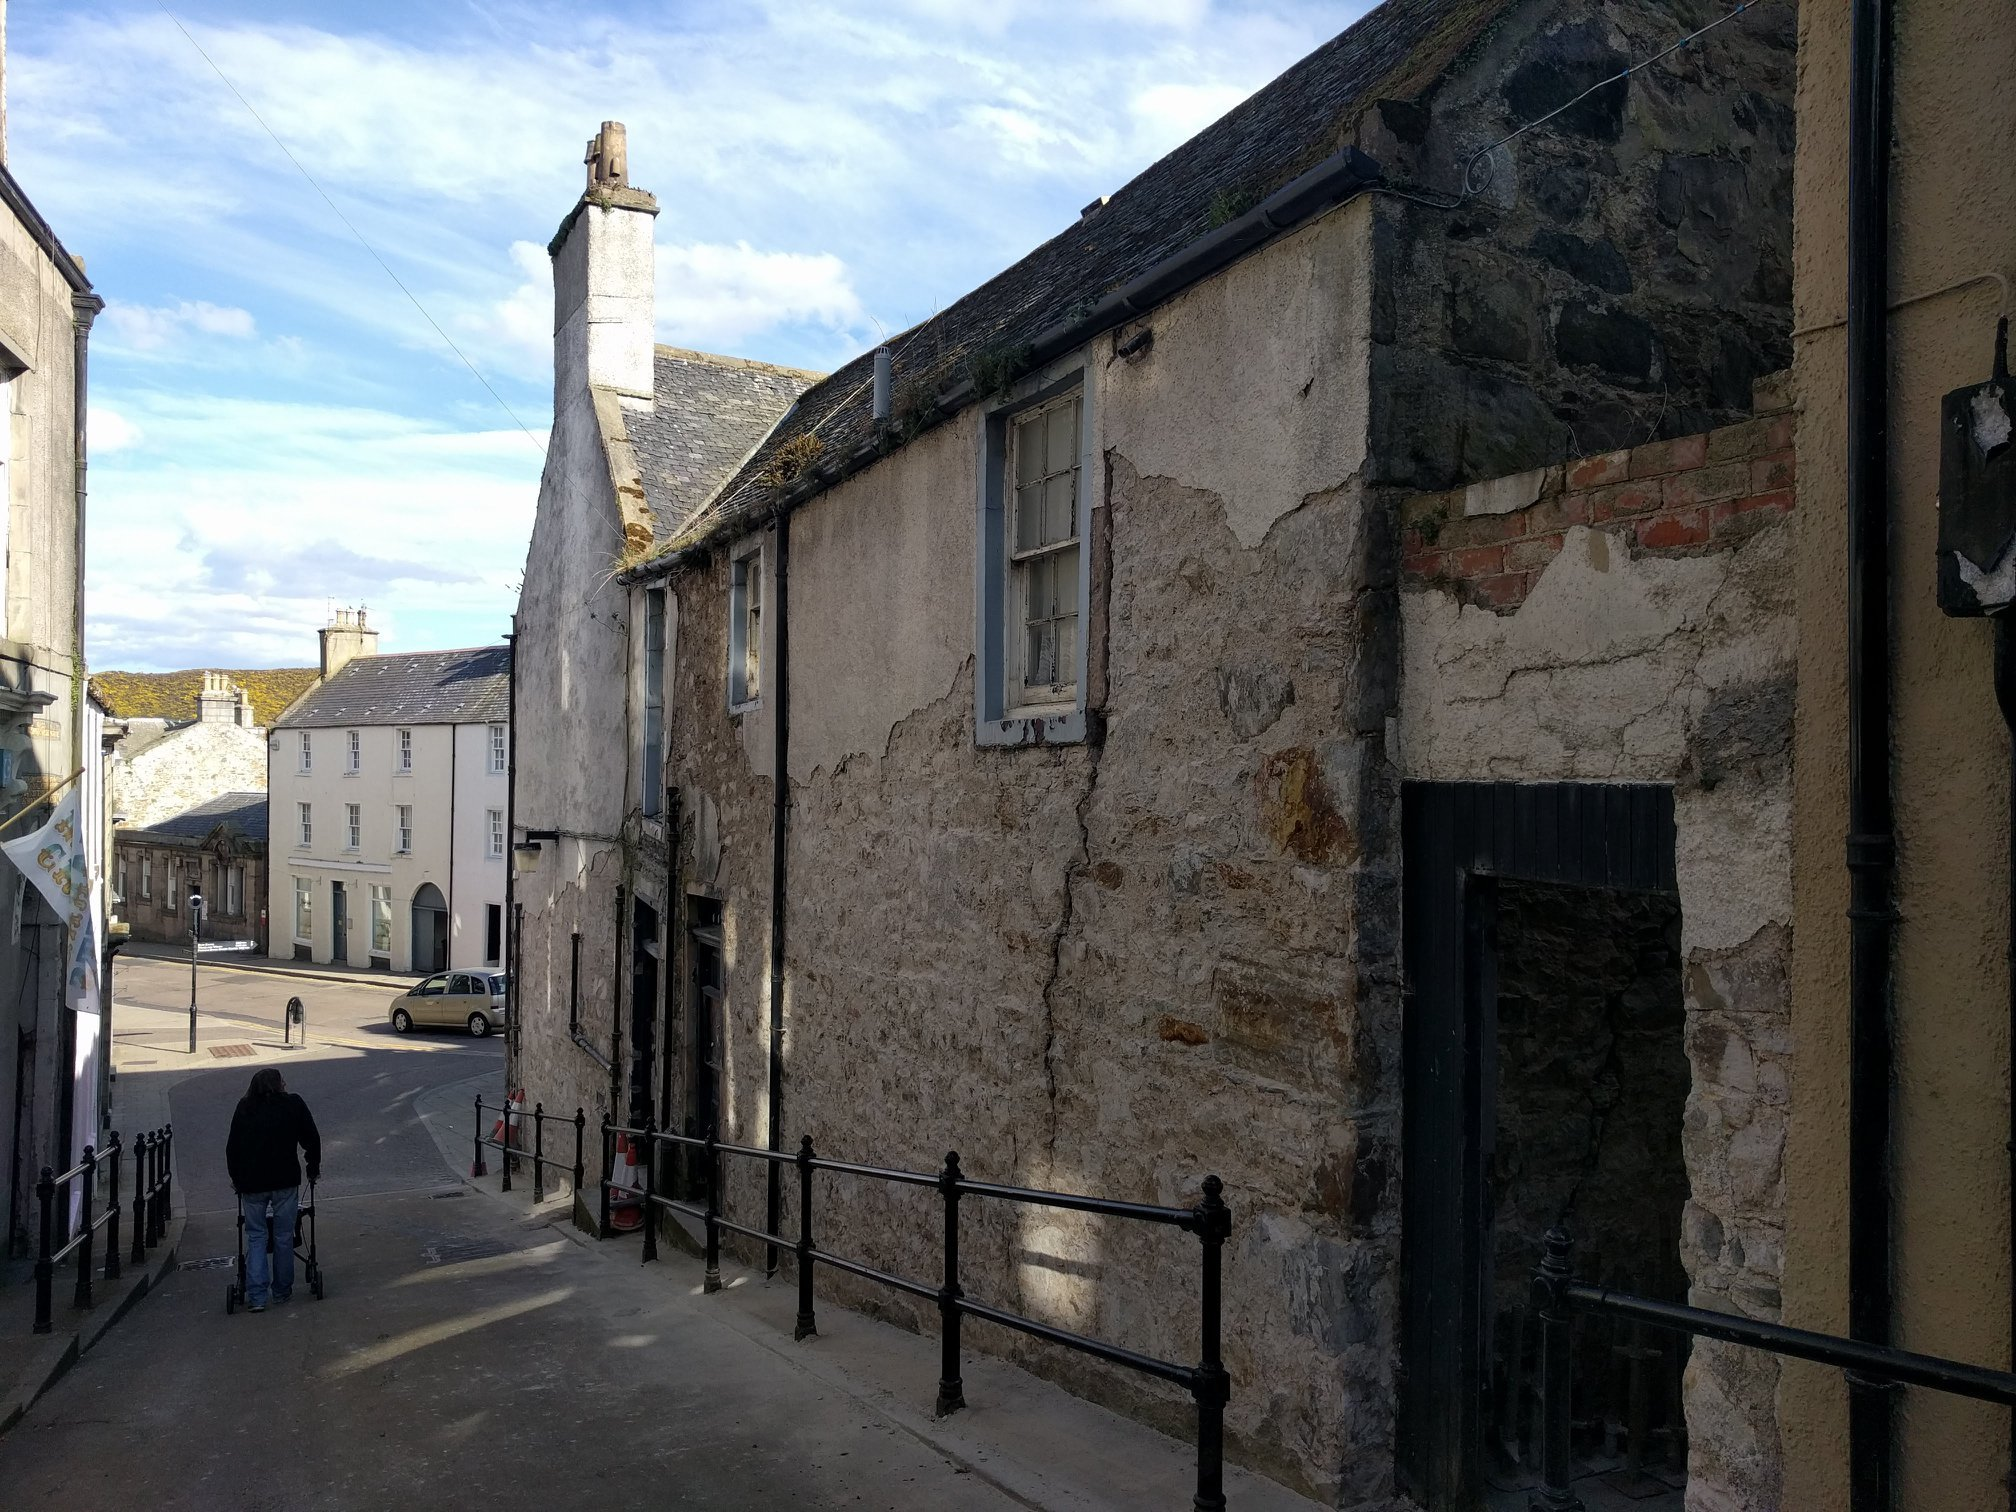 The old Tolbooth Hotel on Low Street in Banff.